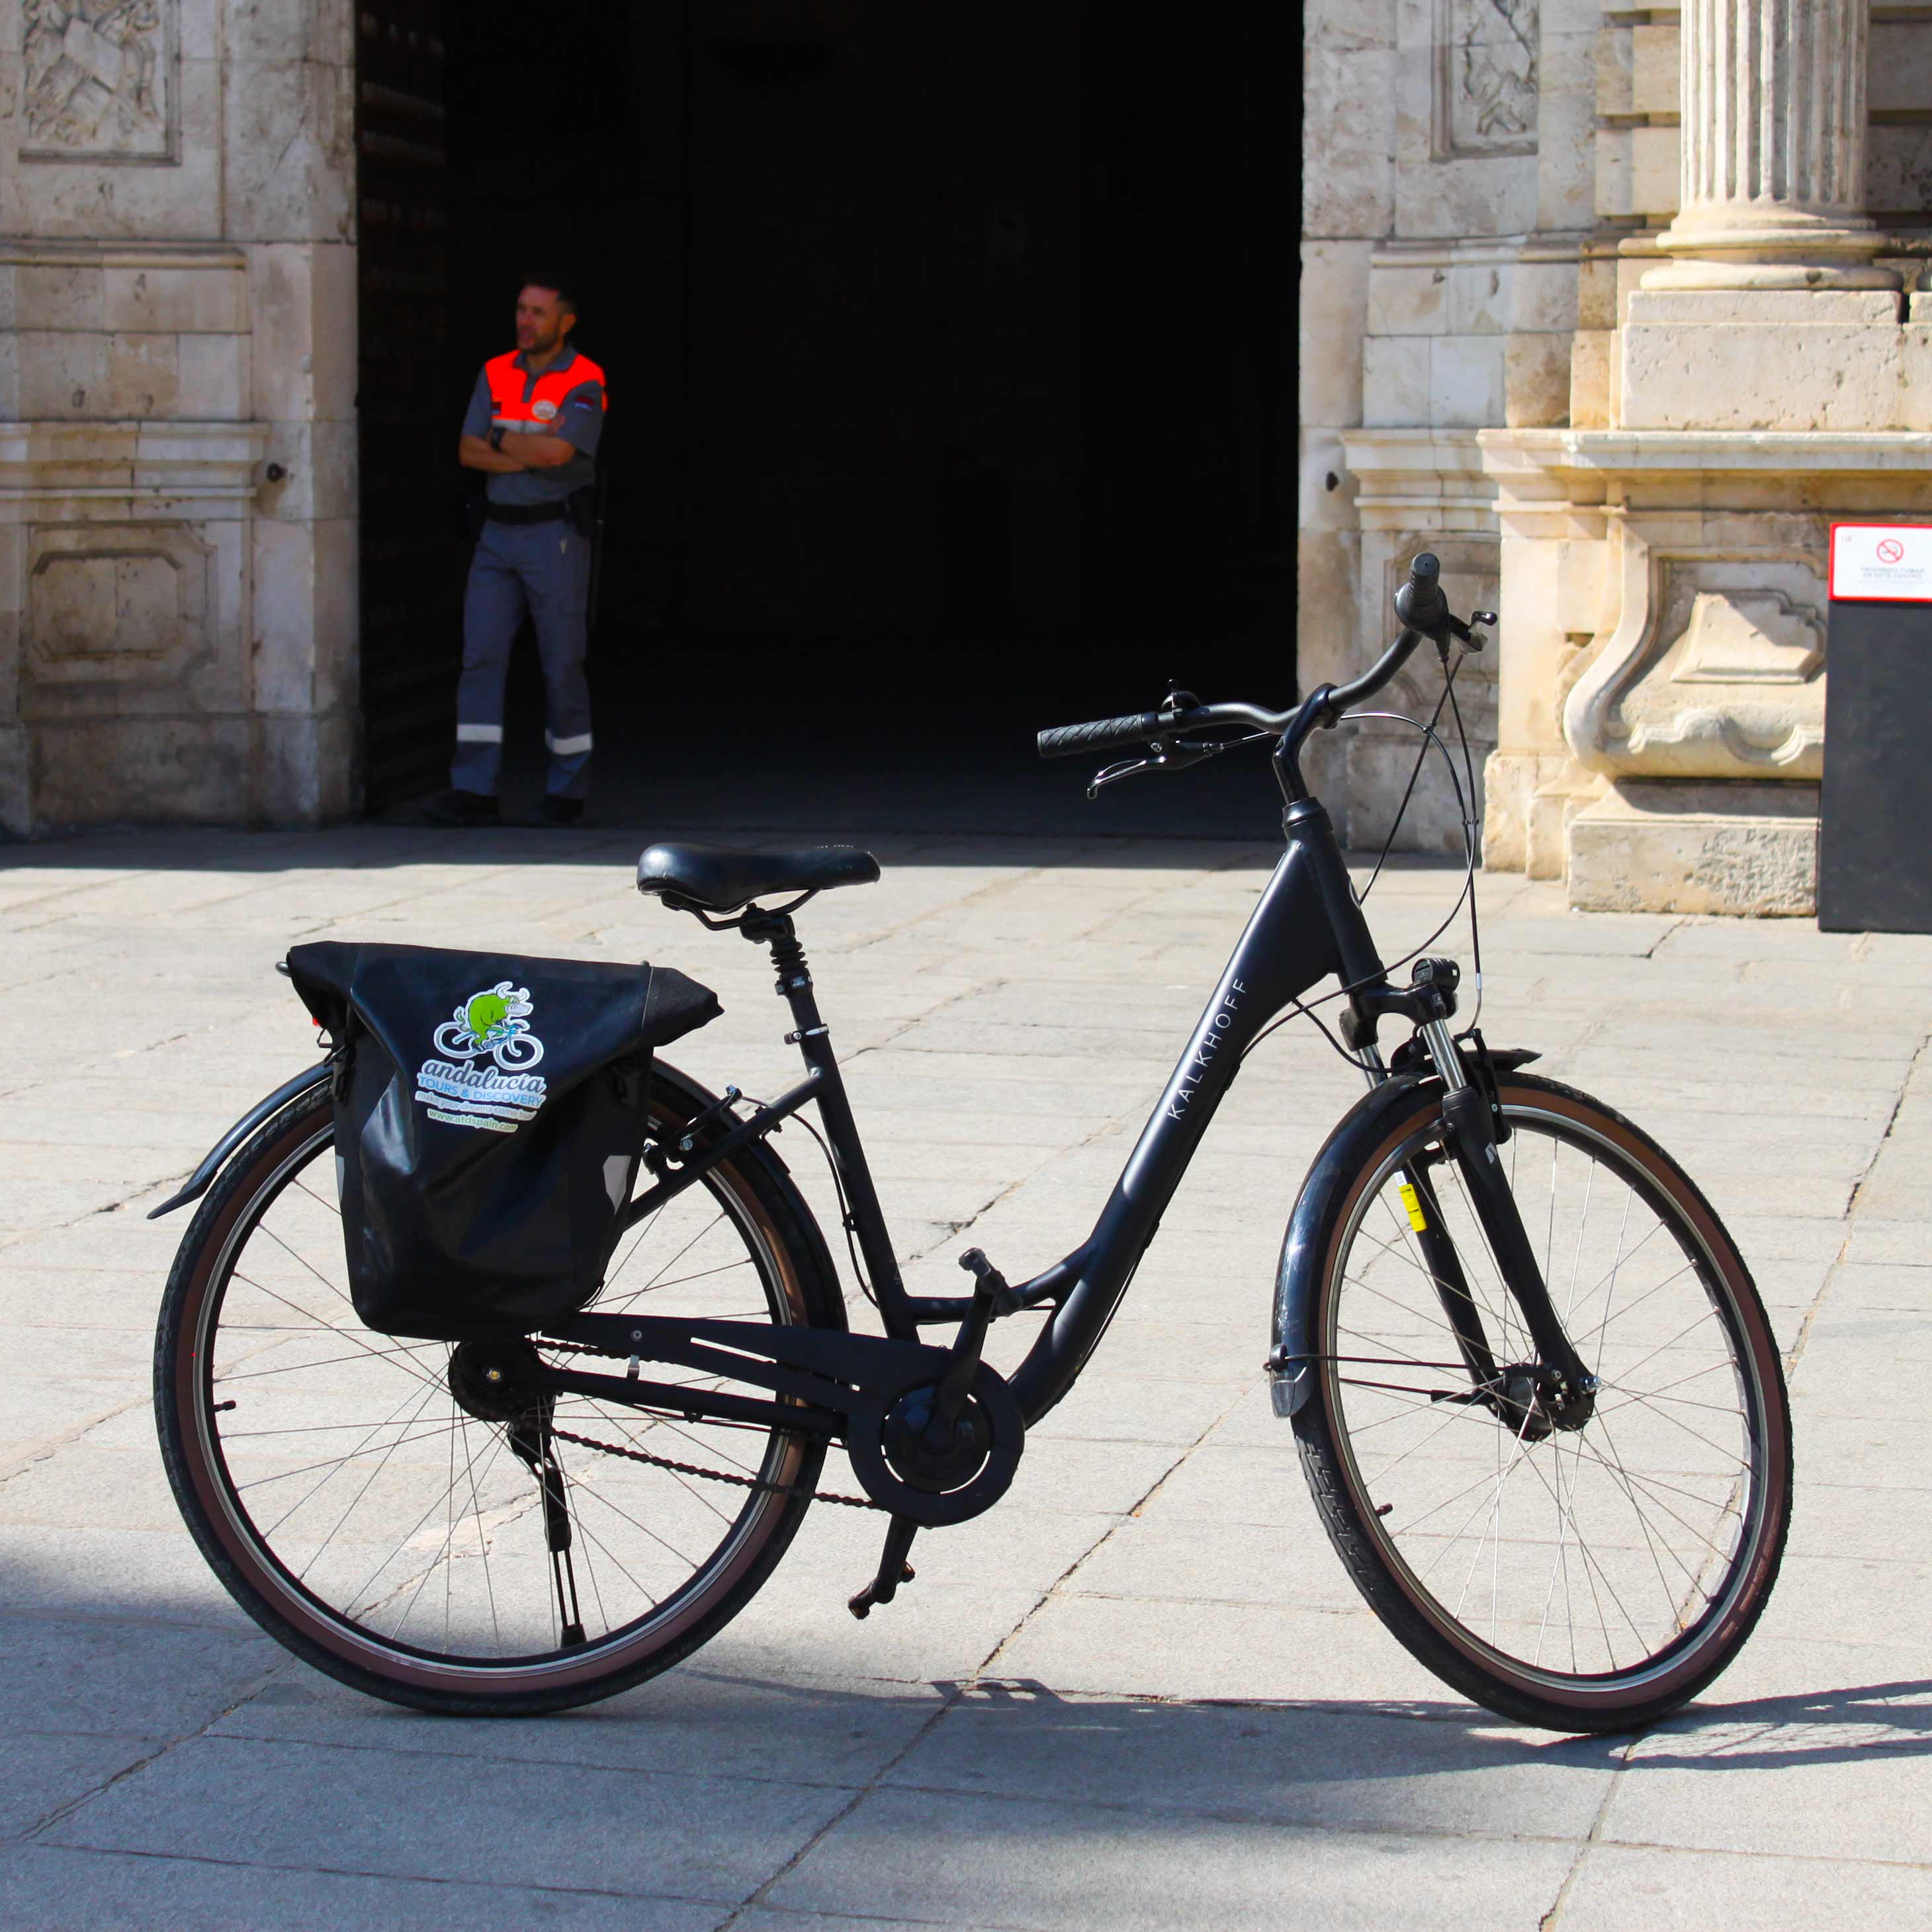 Picture of Kalkhoff bike in front of the University of Seville